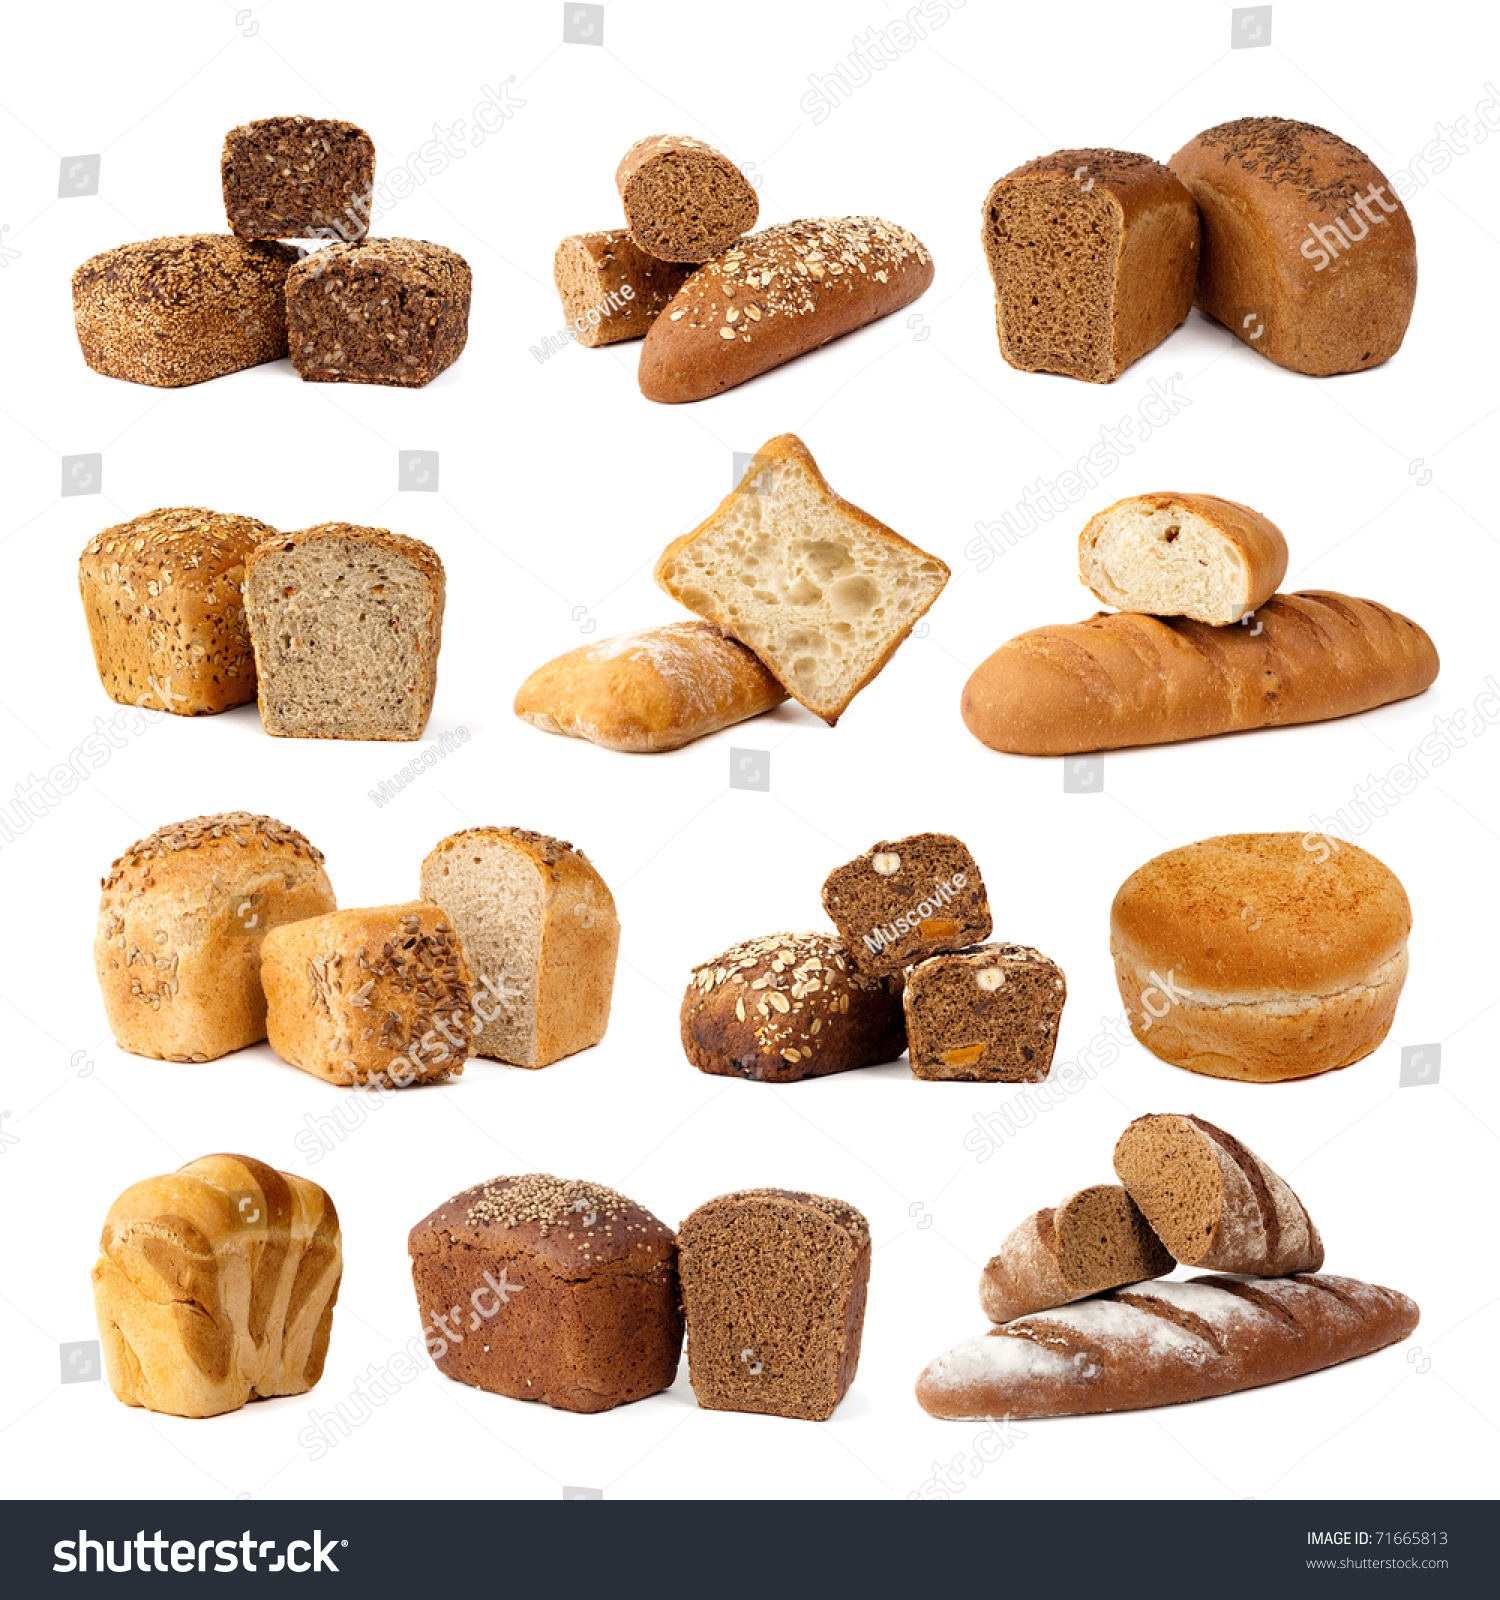 Assortment Different Types Bread Isolated On Stock Photo 71665813 ...